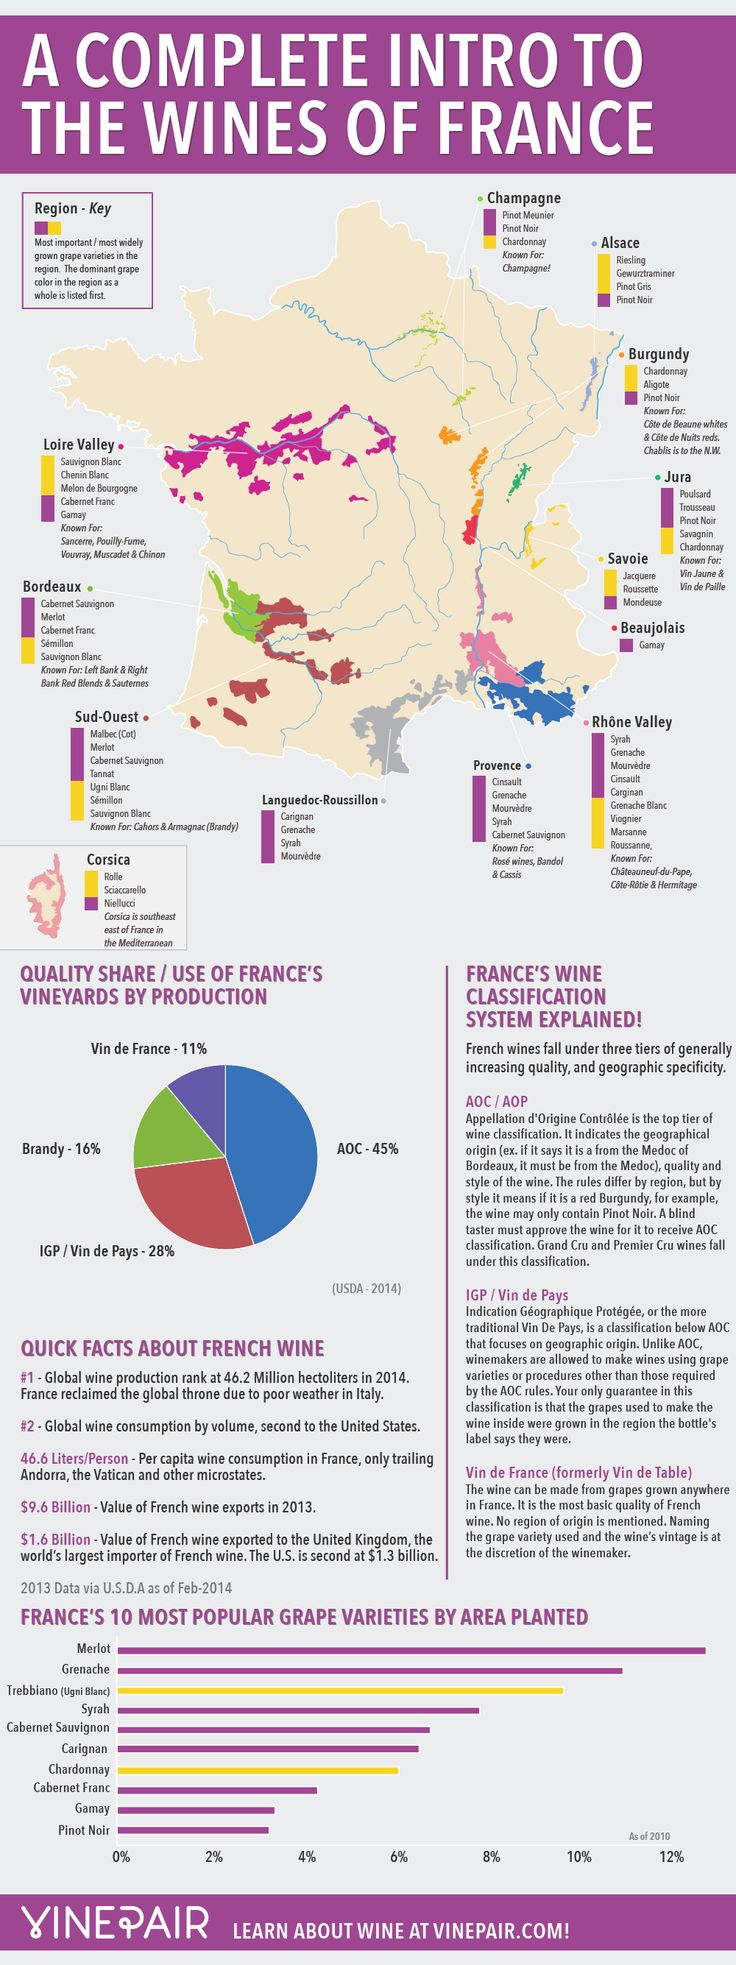 A Complete Introduction To The Wines Of France - This infographic and map is your complete guide to France's wines, including the major regions, the grapes that grow there, and their famous blends, along with general facts. [Infographic, Food, Drink, Wine, #NerdMentor]